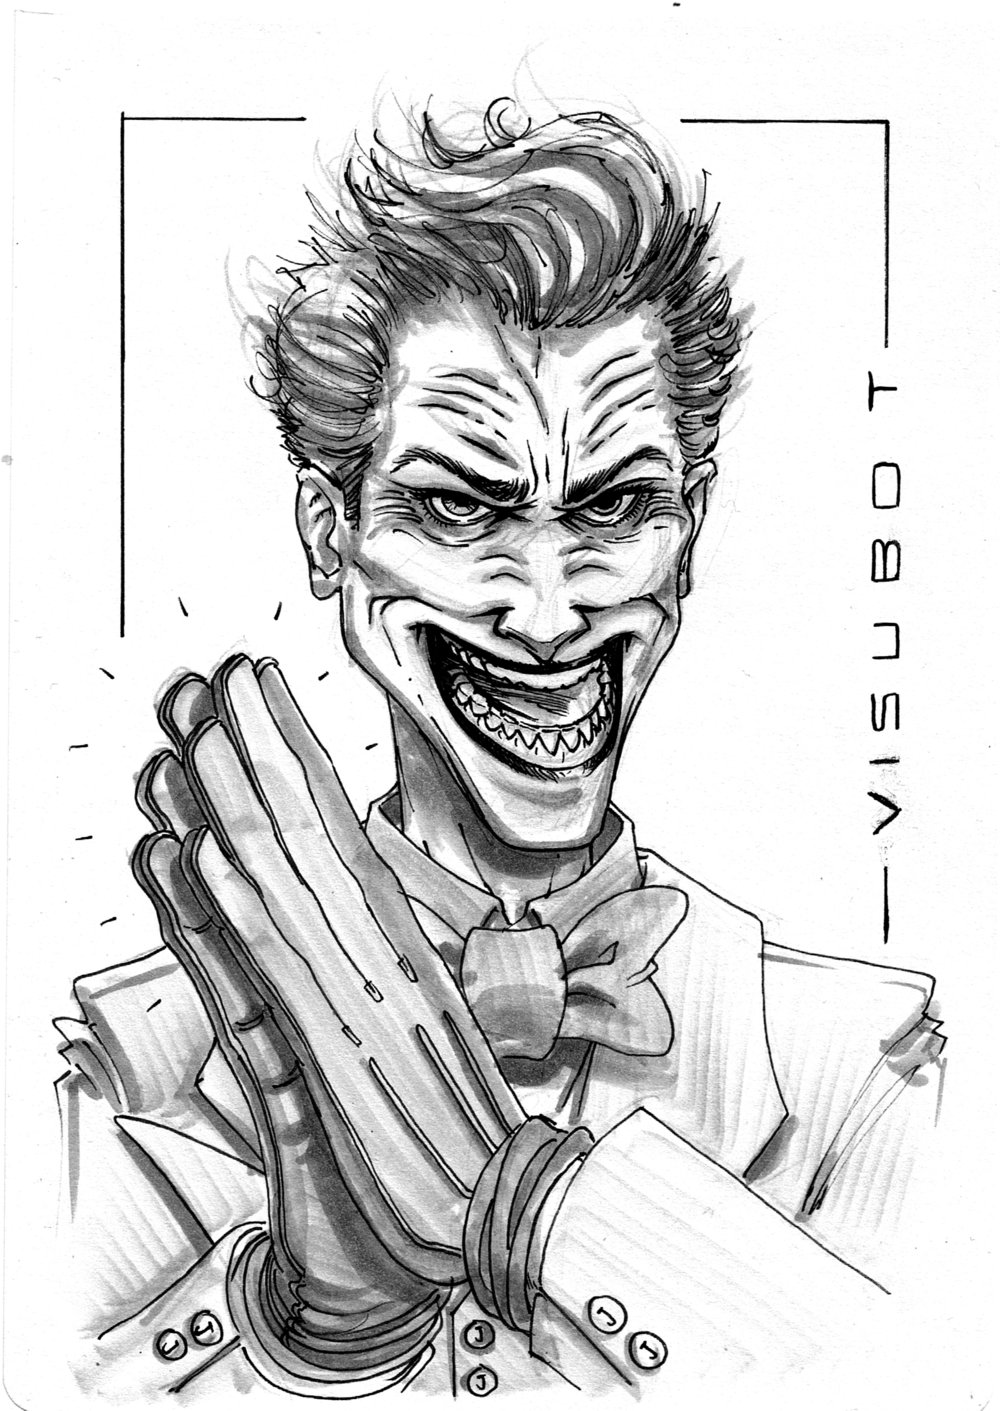 joker_sketch_hands.jpg